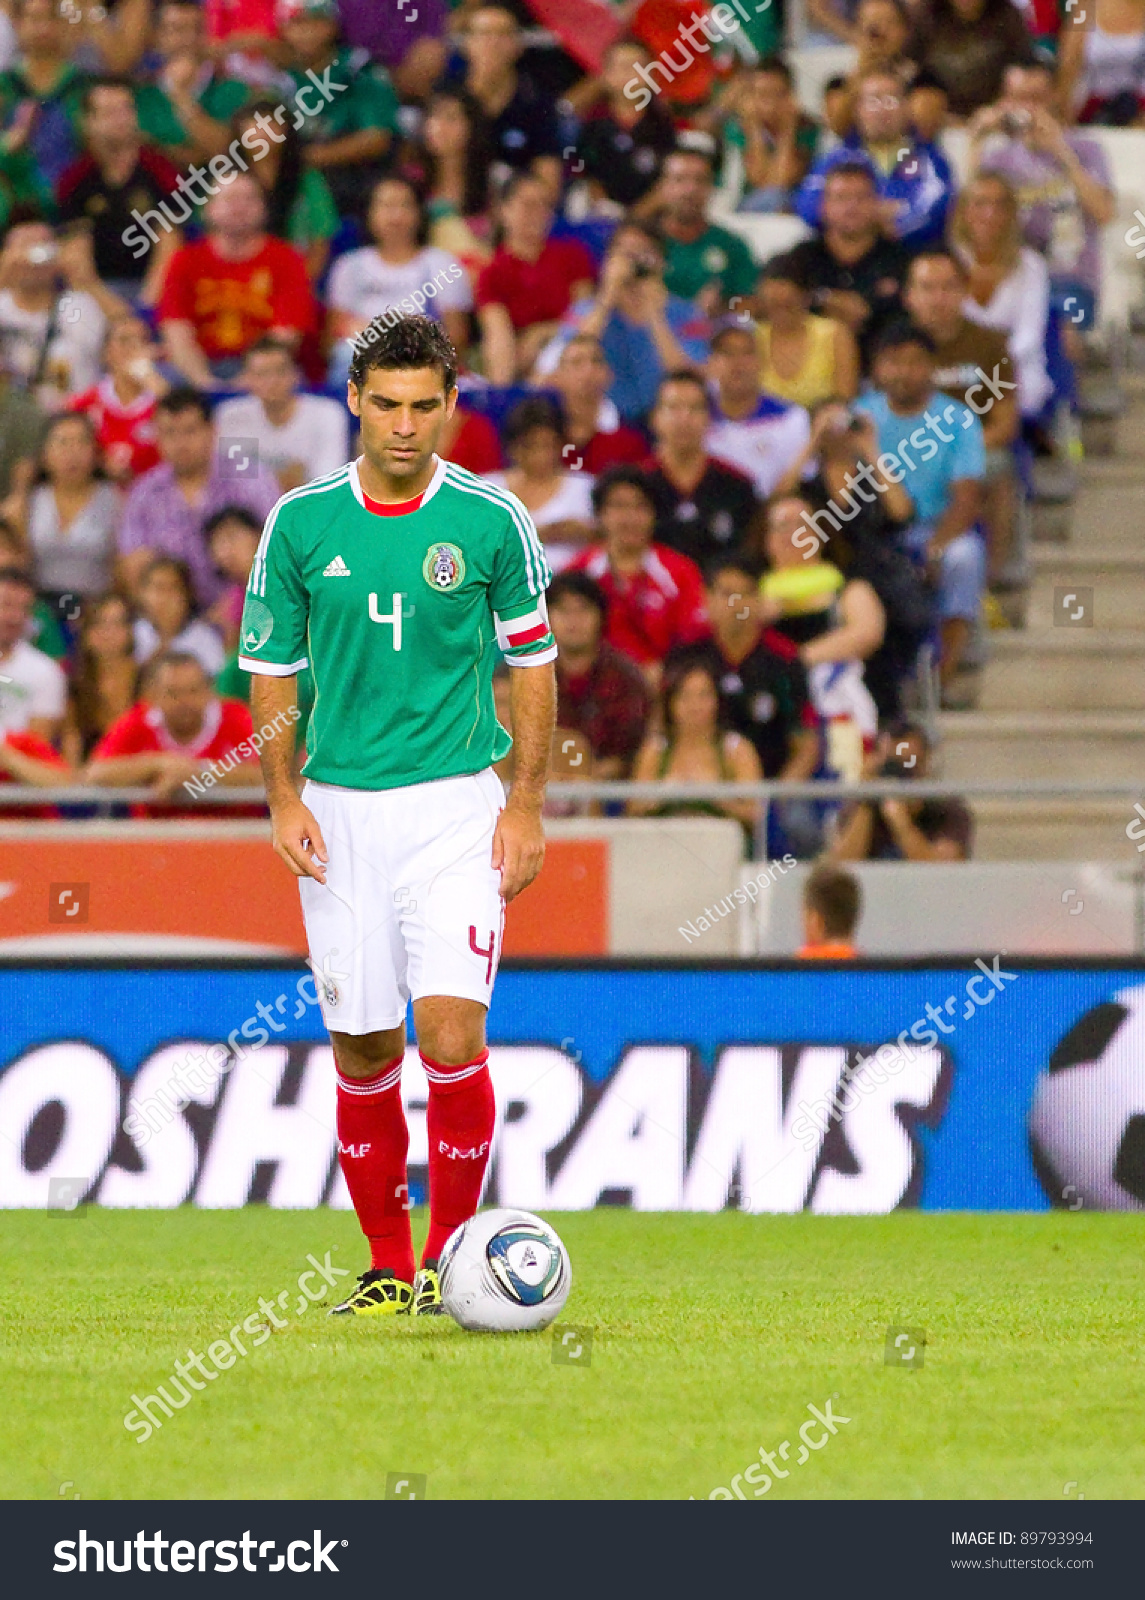 new concept 4d670 6d021 Barcelona September 4 Rafa Marquez 4 Stock Photo (Edit Now ...